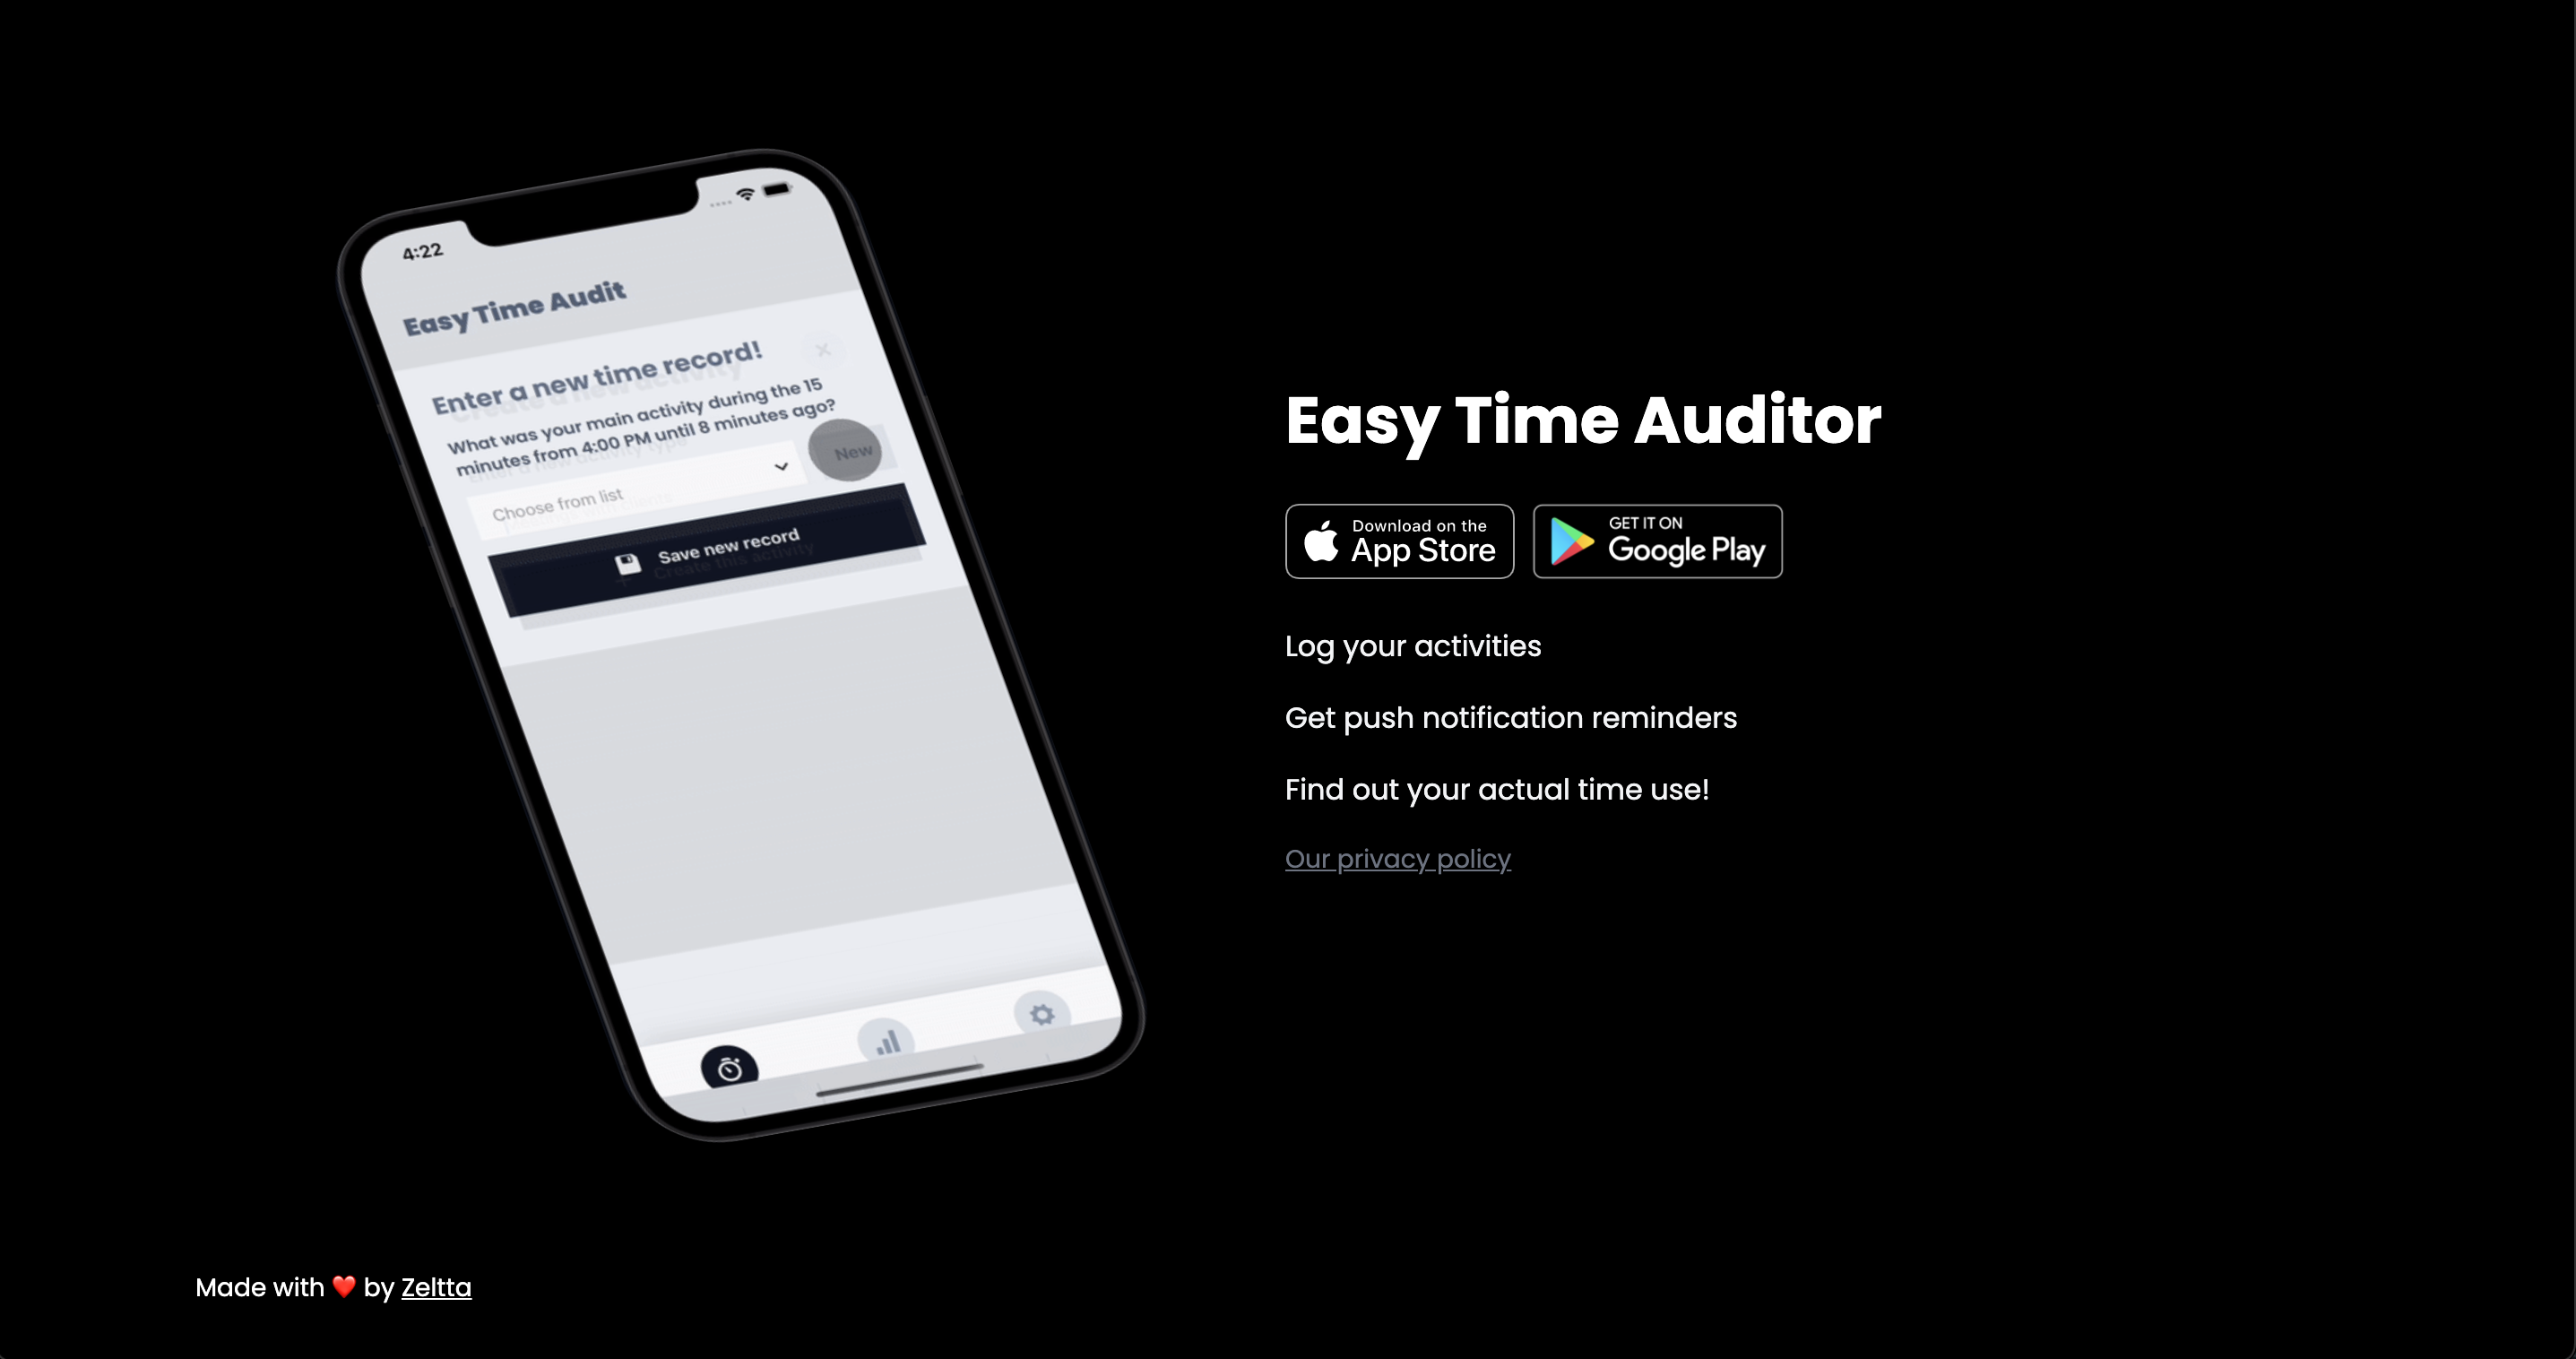 Case Study: Easy Time Auditor